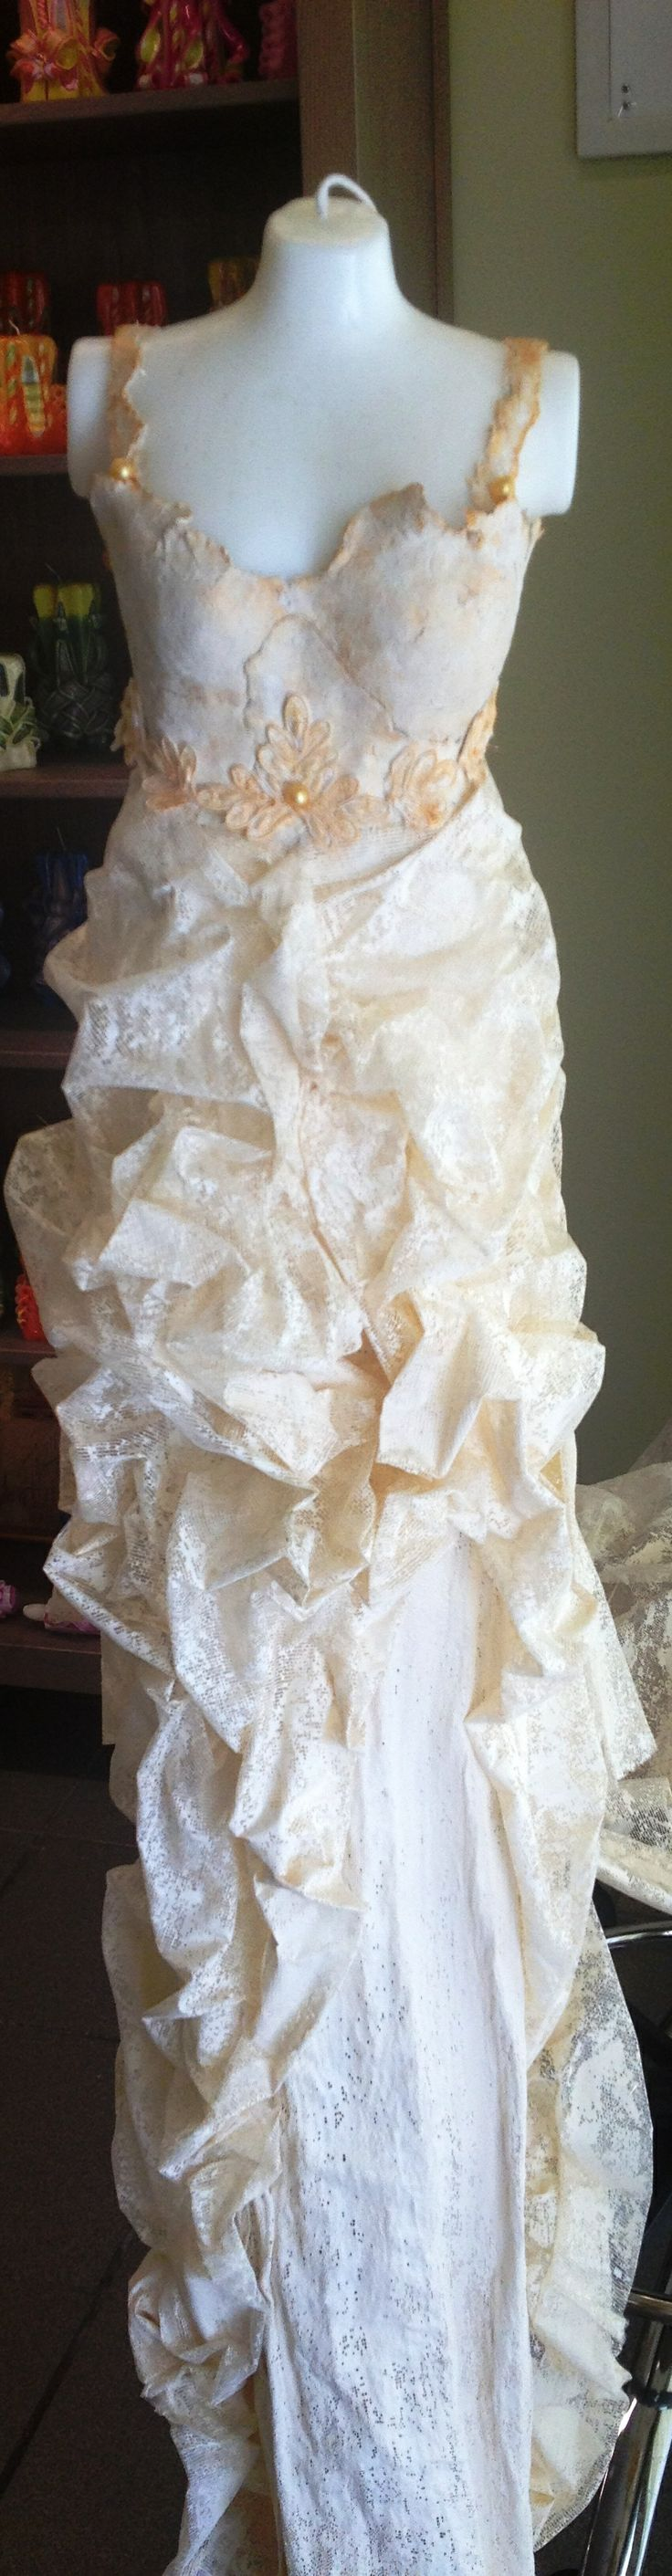 A candle as a wedding decor, with tuille, lace with pearls  and stone art.